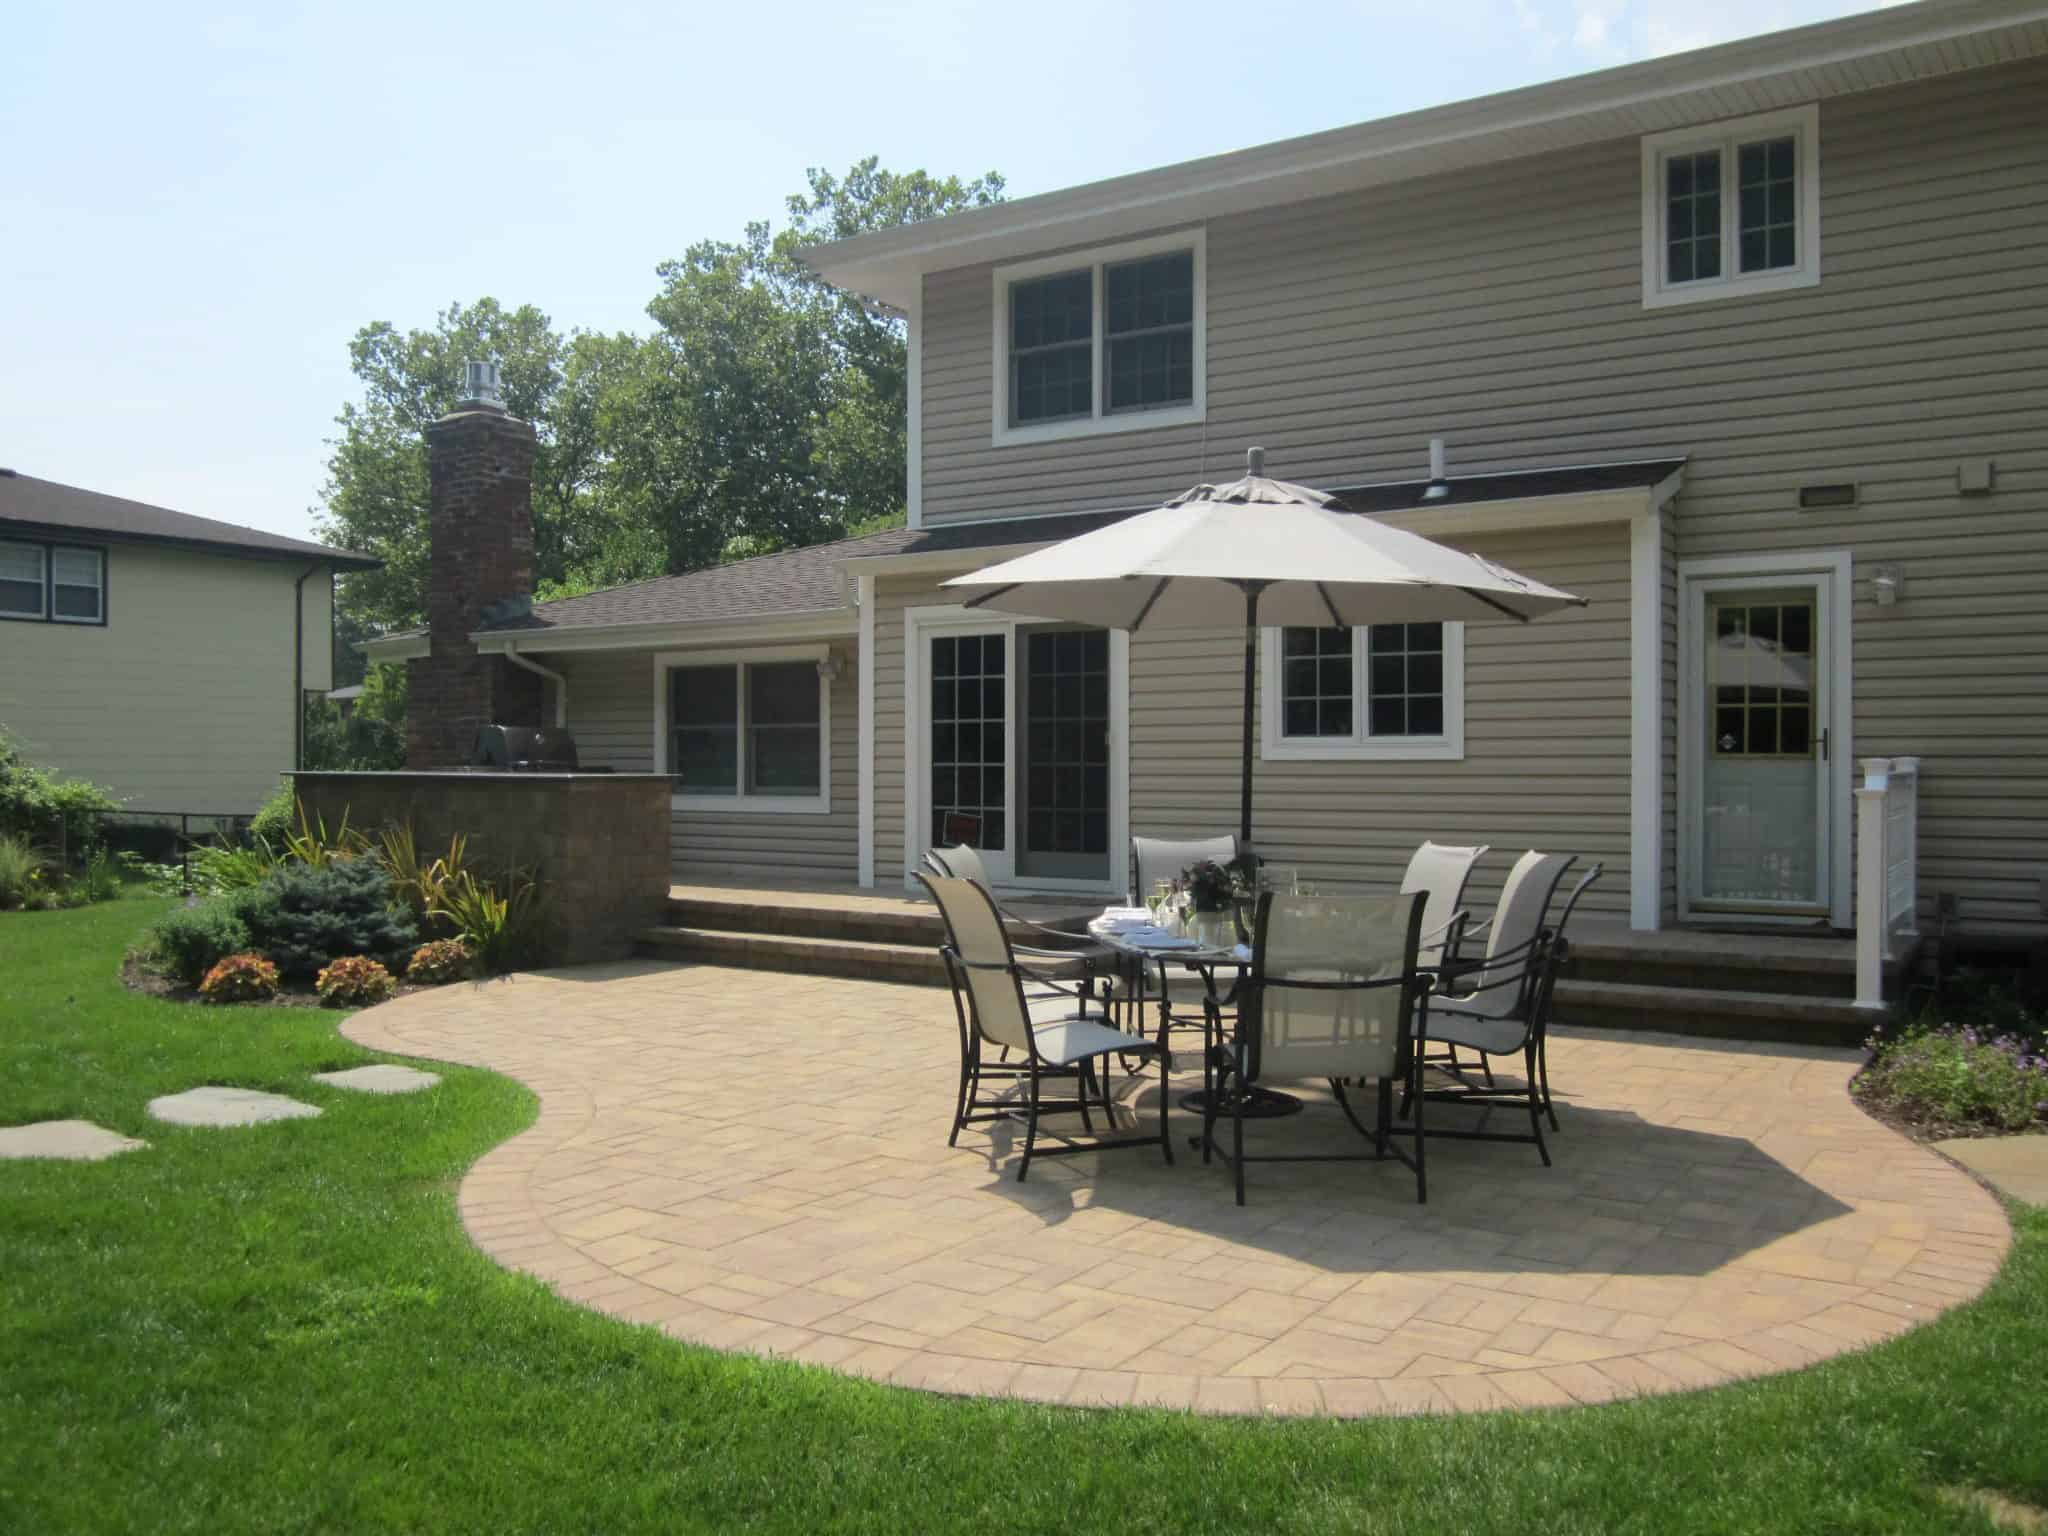 Paver Patio - Cambridge Ledgestone Pool and Stoop -Sahara Chestnut- Random Pattern - Dix Hills, Long Island NY